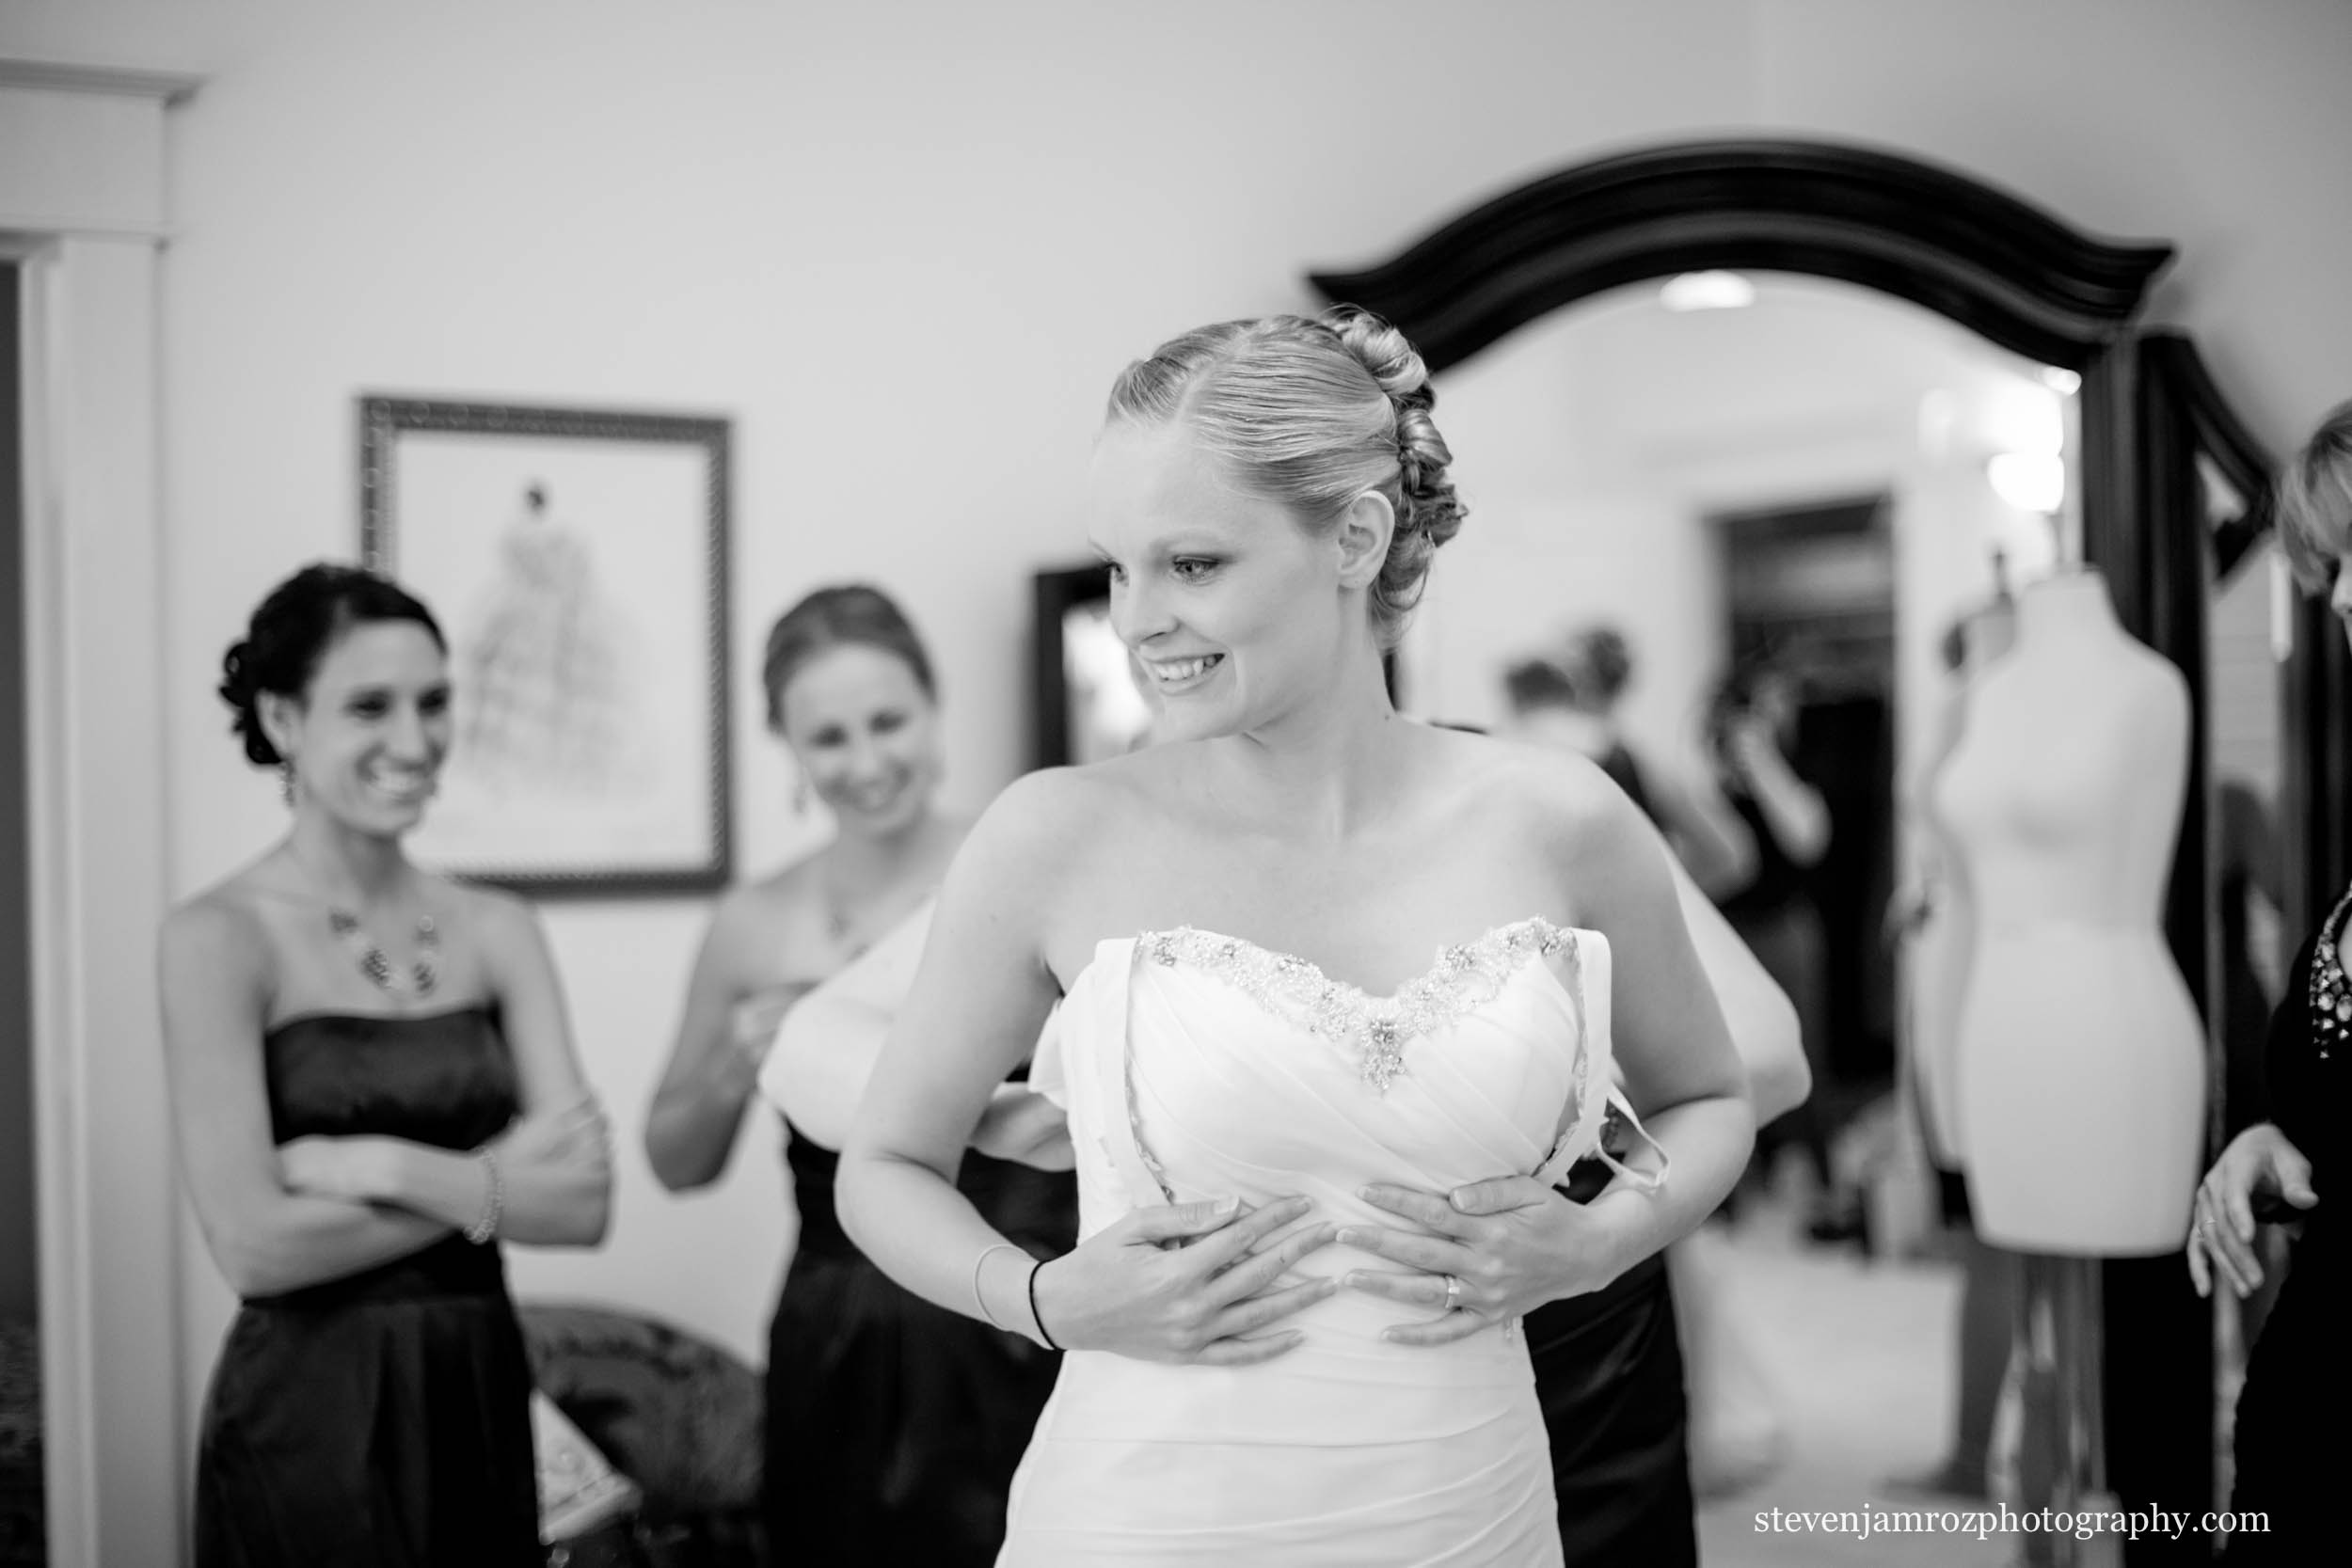 get-ready-at-hudson-manor-estate-wedding-steven-jamroz-photography-0449.jpg